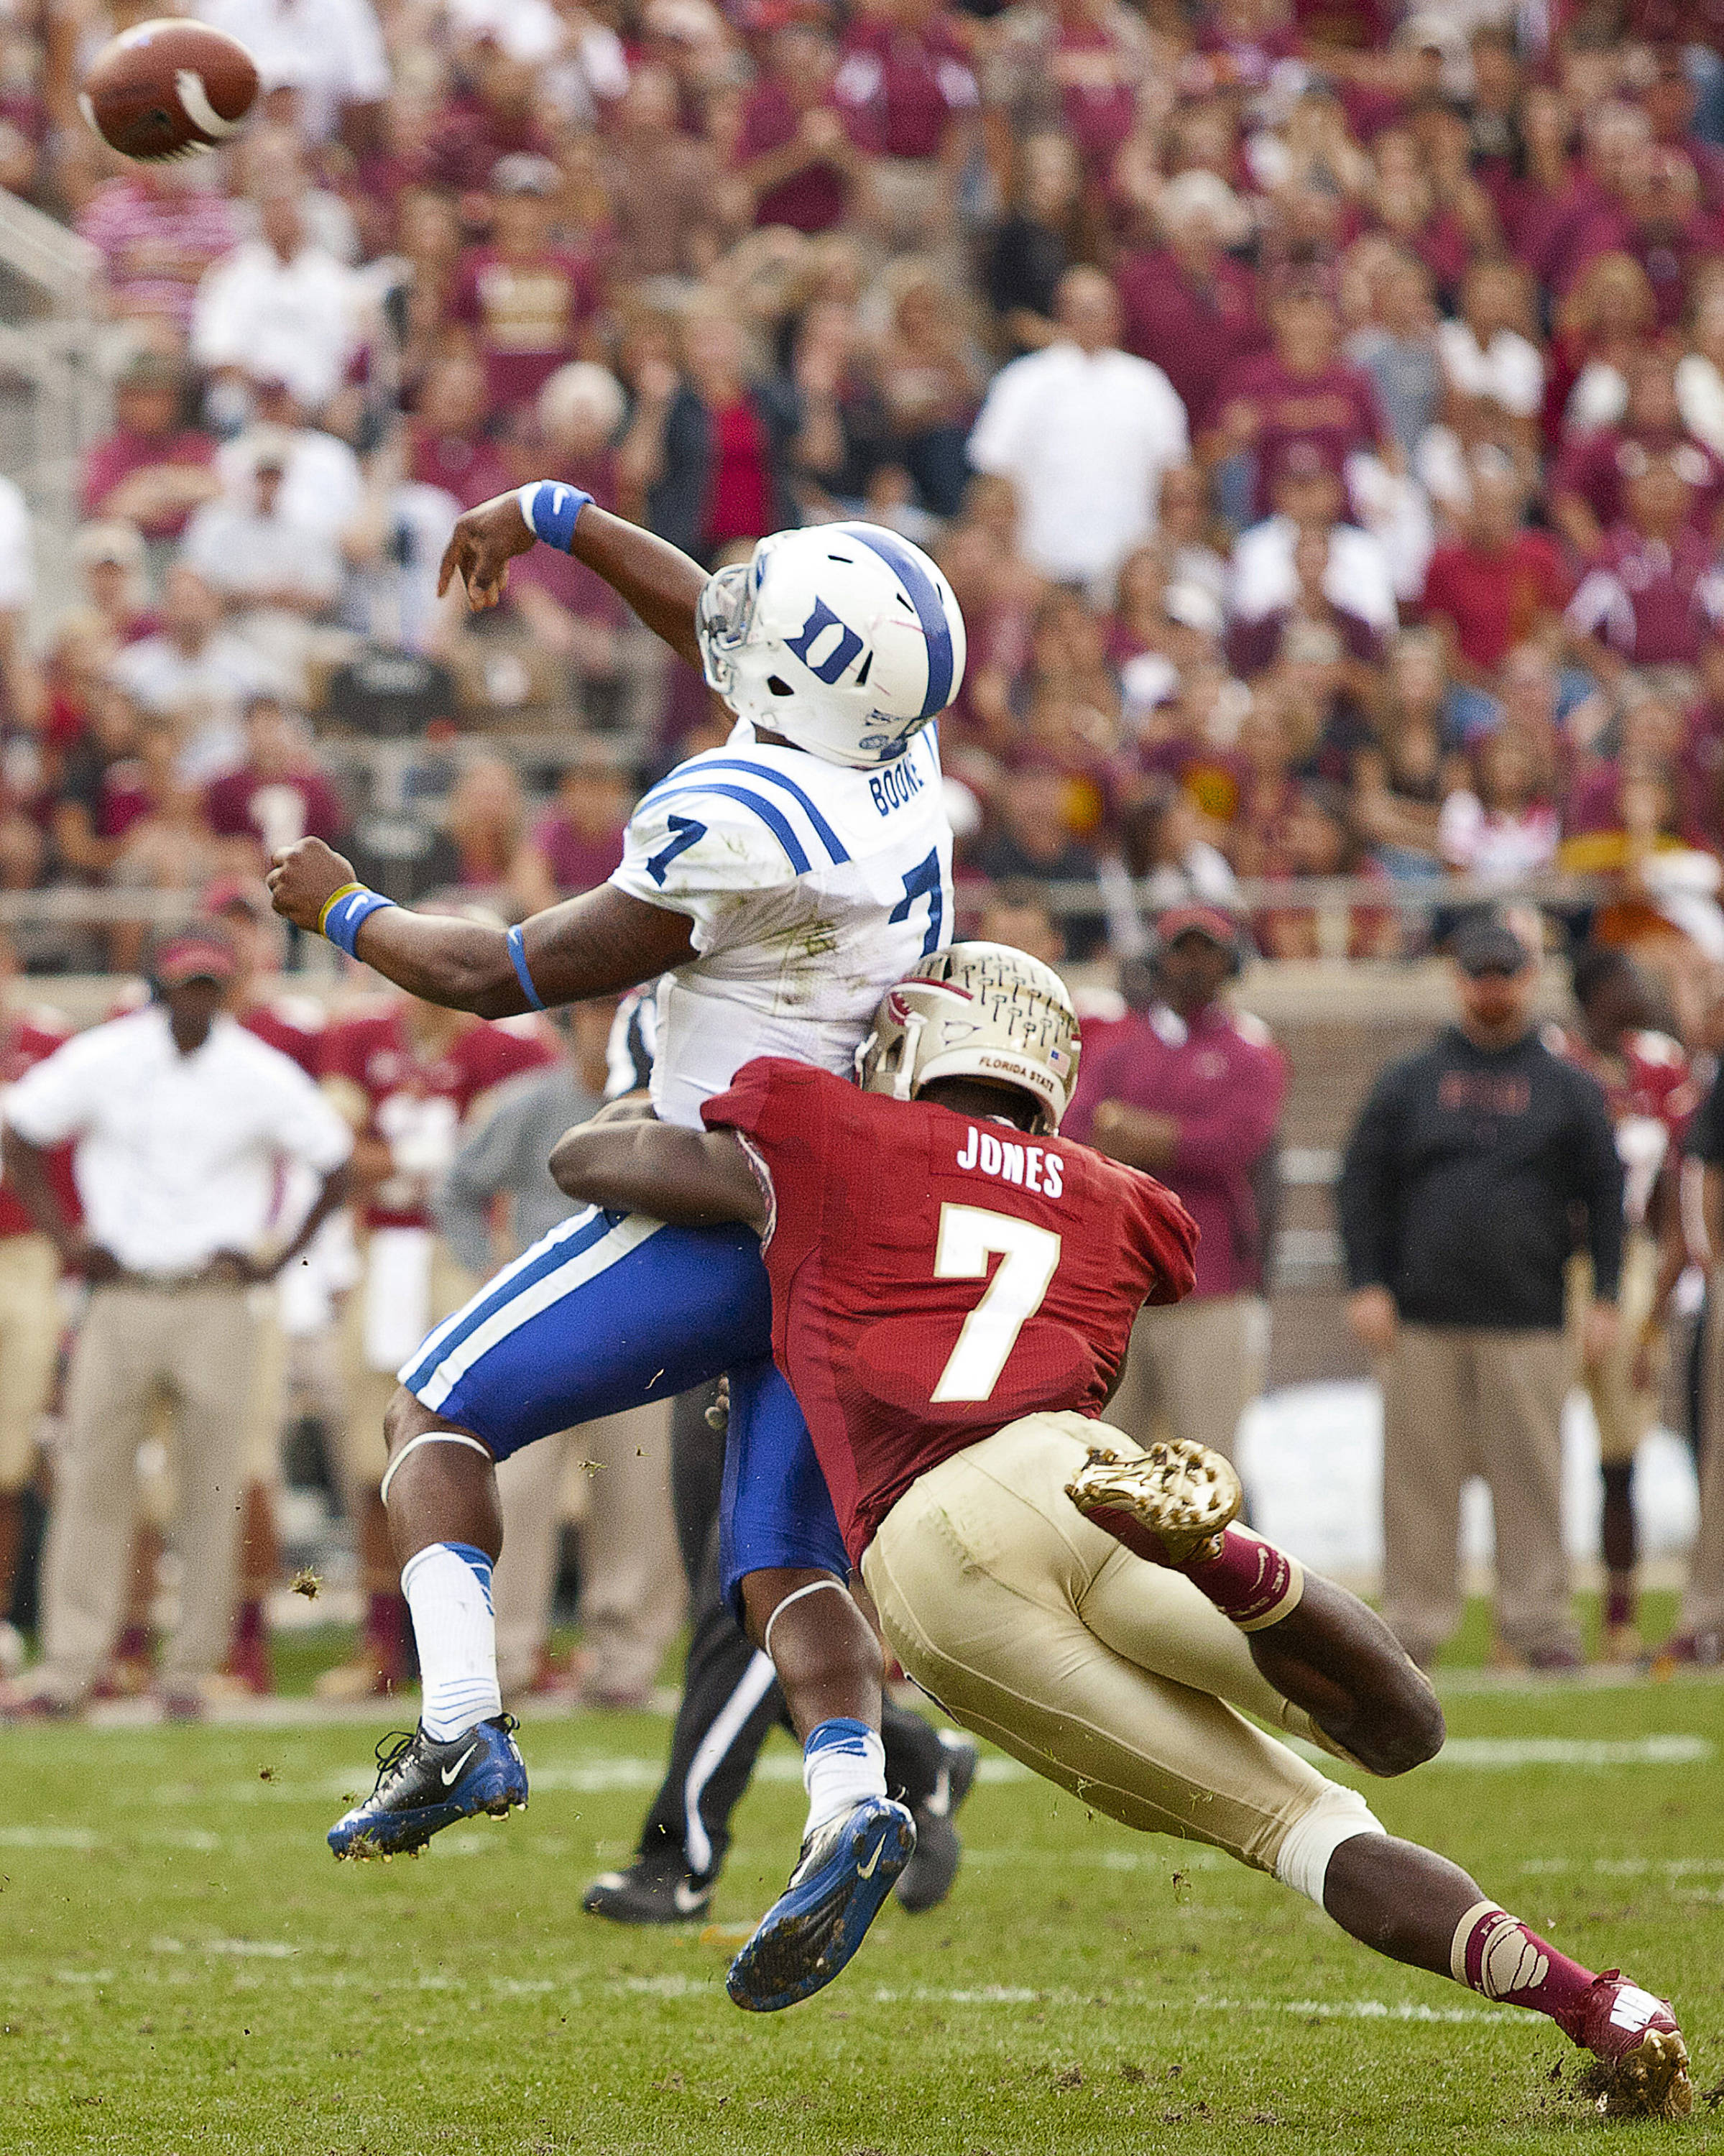 Christian Jones (7) attempts to tackle Duke's quarterback during FSU's 48-7 victory over Duke on October 27, 2012 in Tallahassee, Fla.